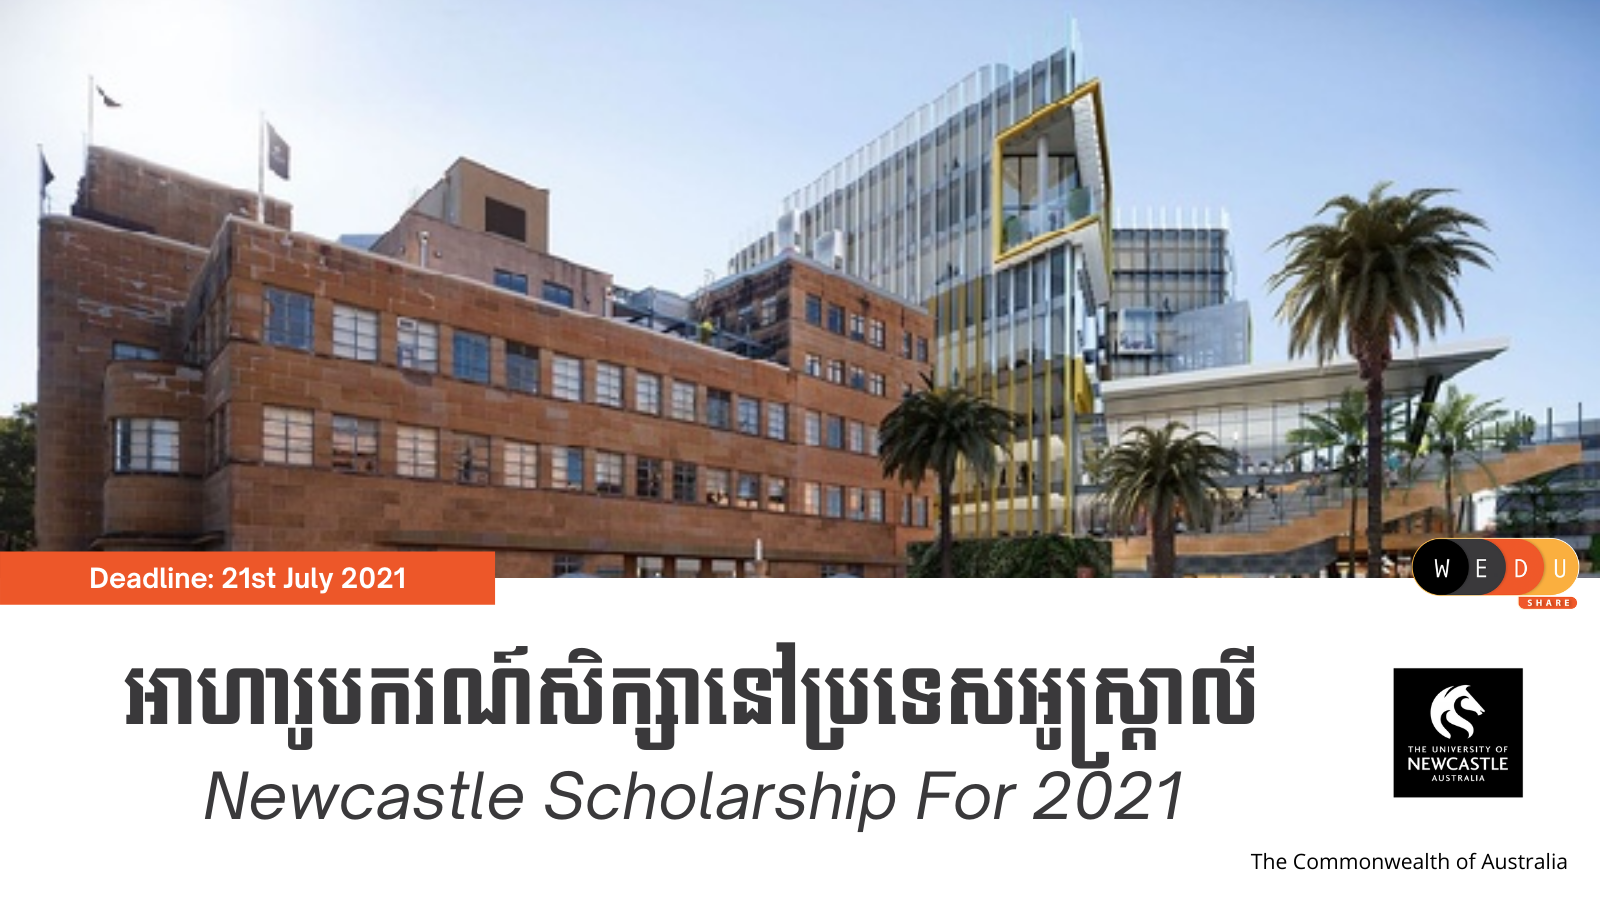 Newcastle Scholarship For 2021